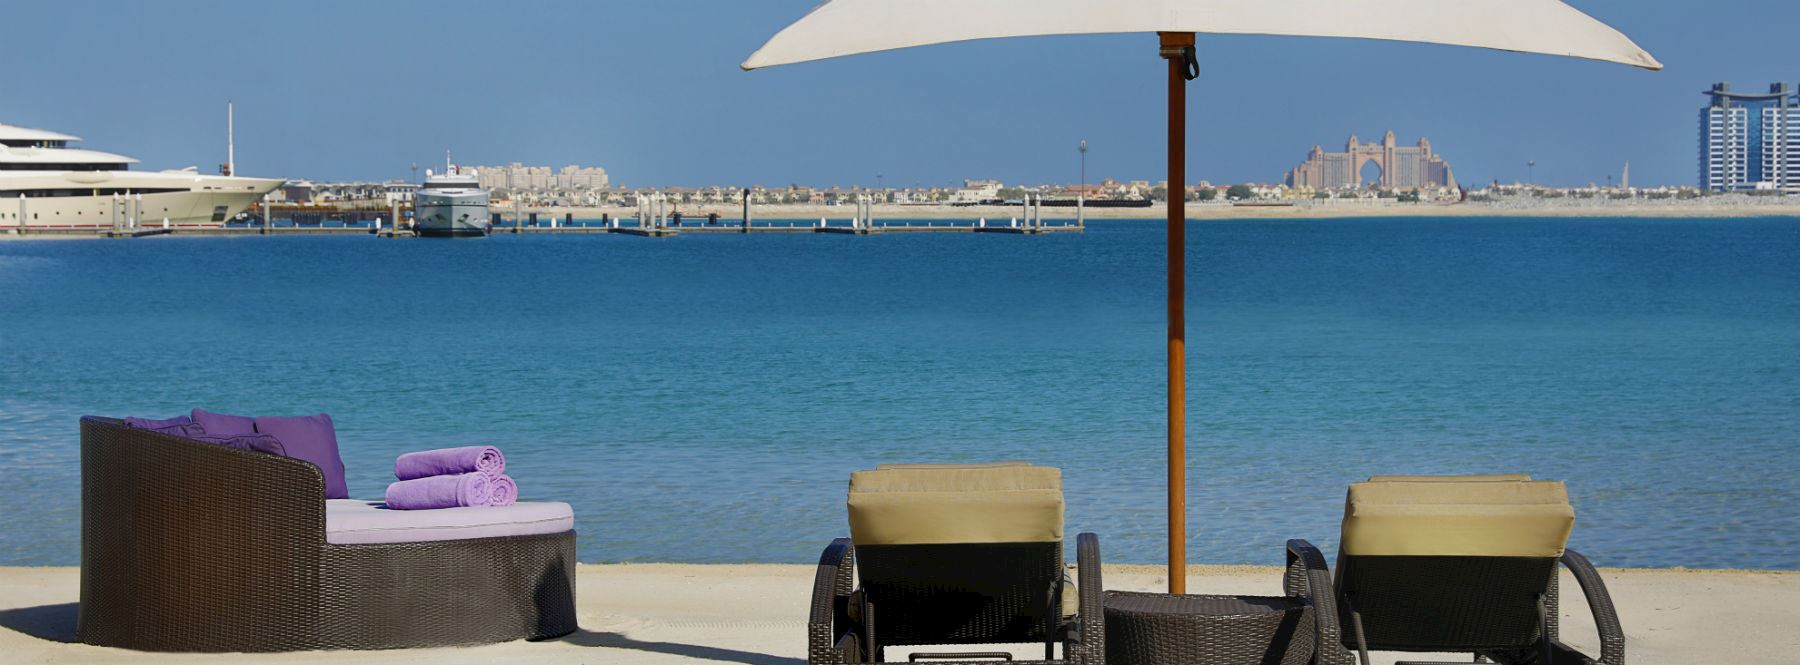 Meridien Mina Pool and Beach